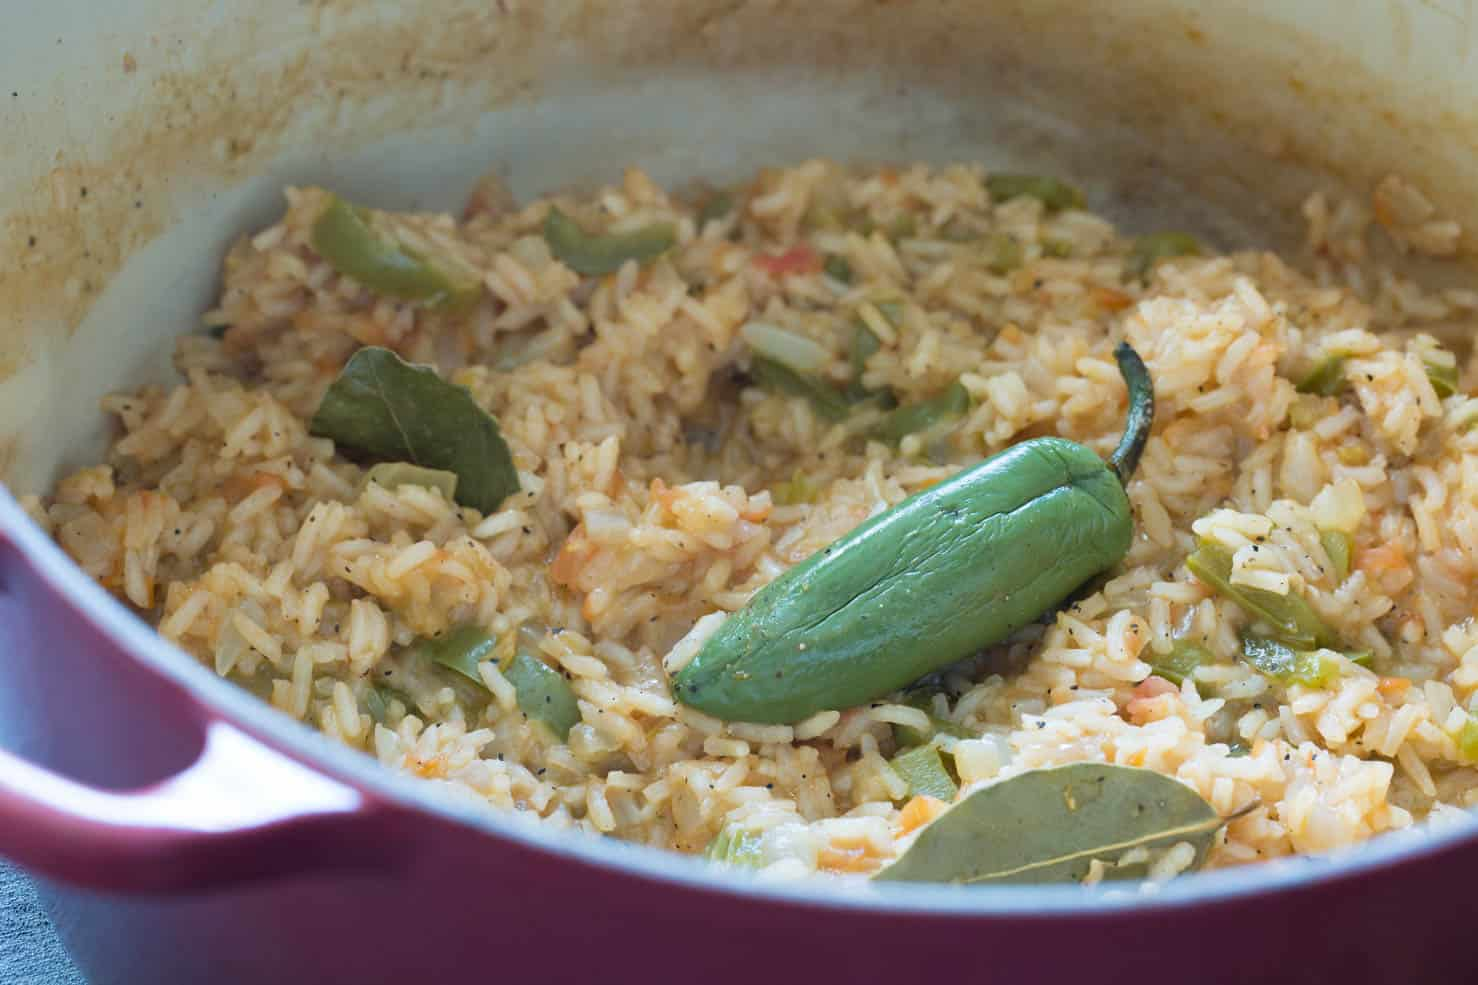 A roasted jalapeno atop mexican rice in a bowl.